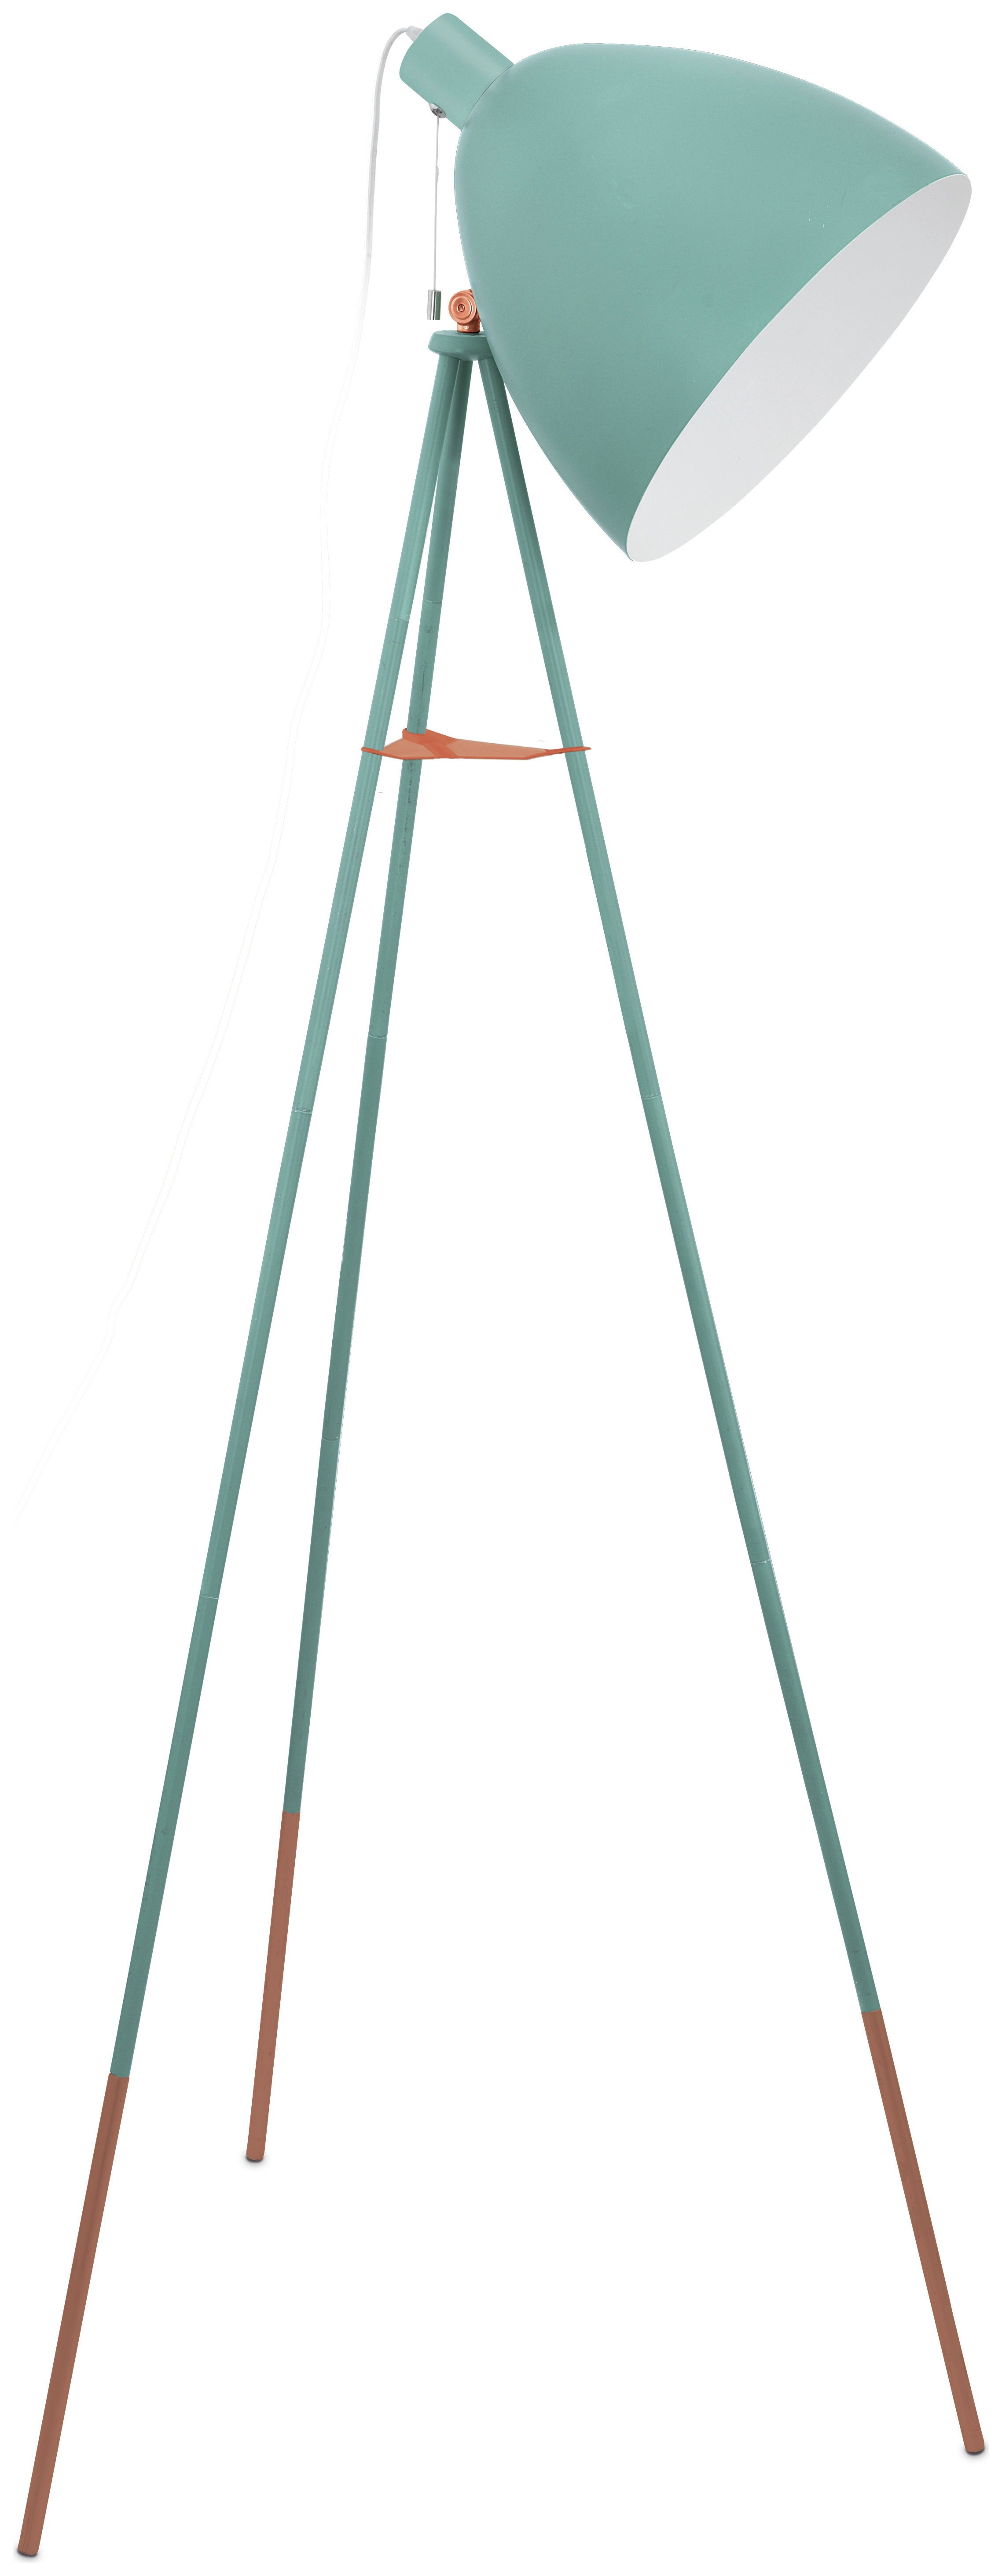 Eglo Carlton Vintage Floor Lamp - Mint